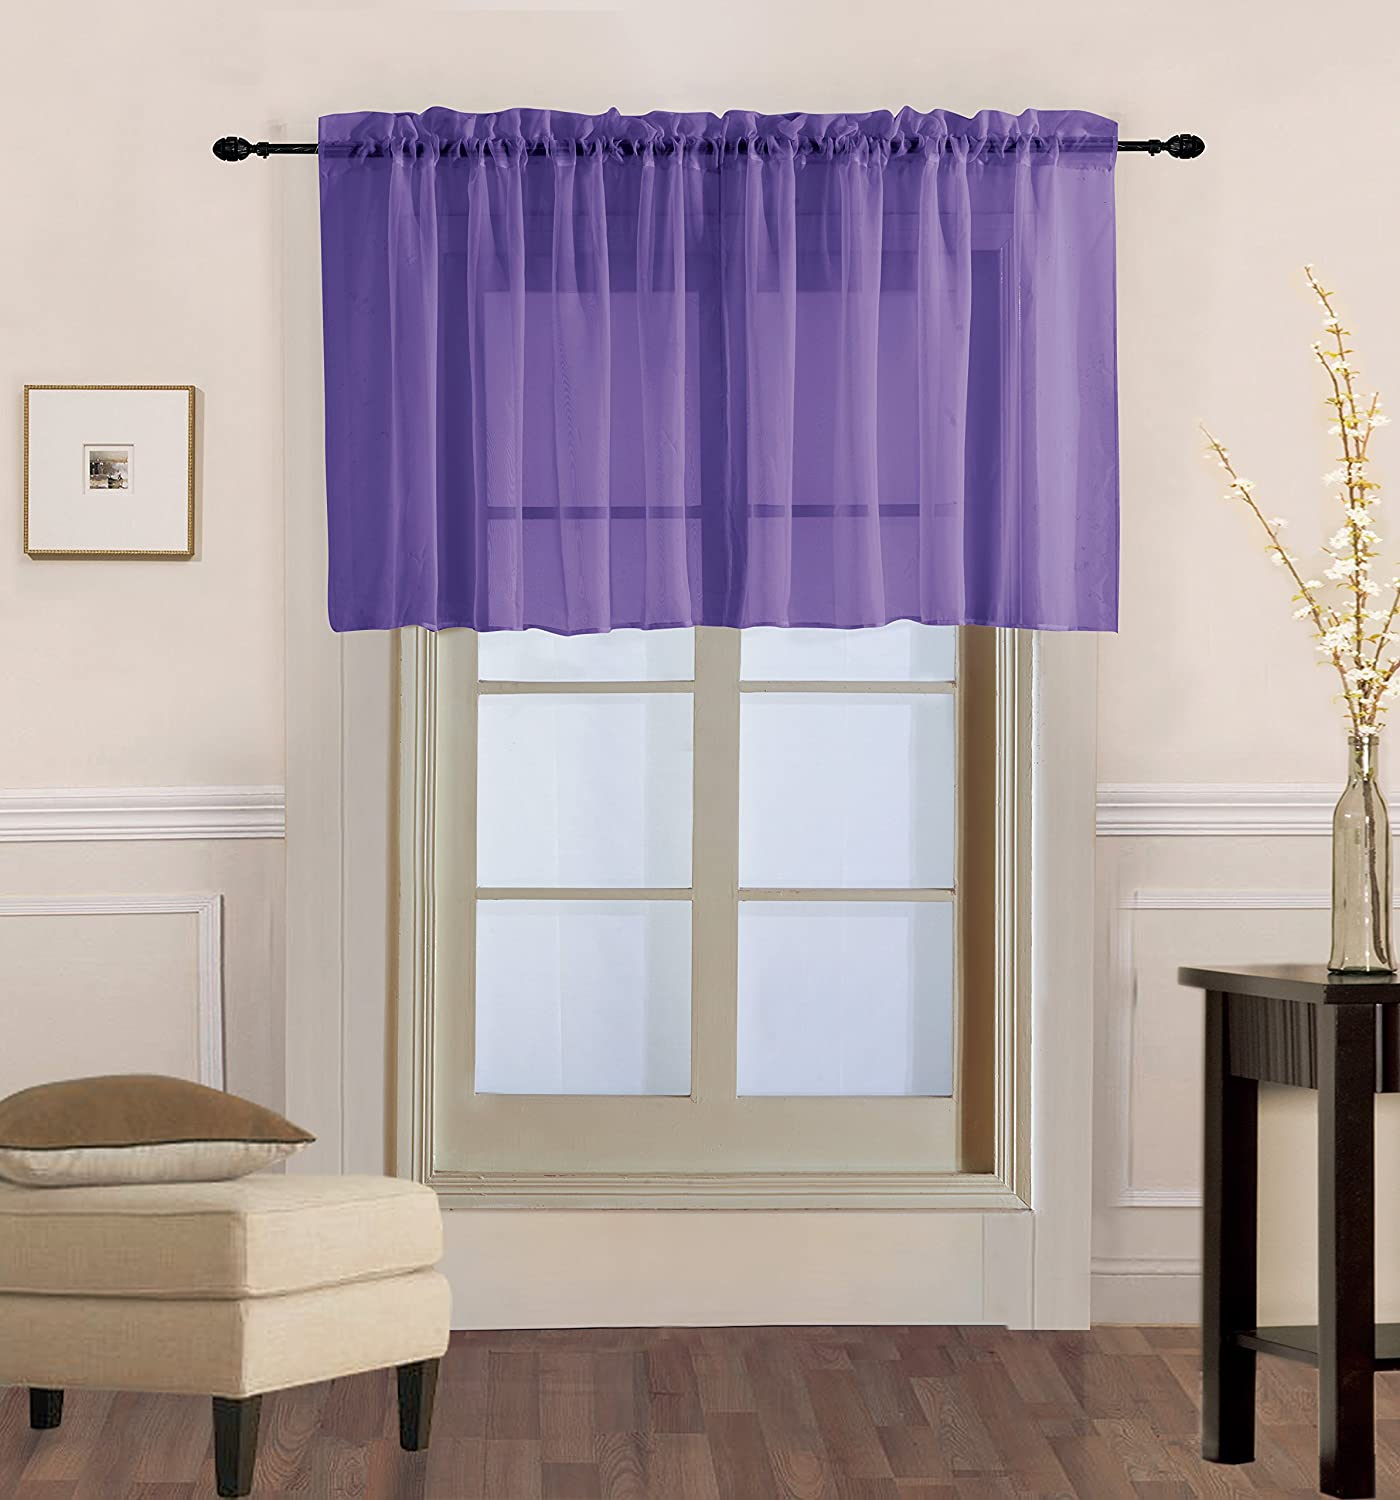 "Luxury Discounts 1 PC Solid Rod Pocket Sheer Window Curtain Treatment Drape Voile Panel In Variety Of Colors (54"" X 36"", Purple)"